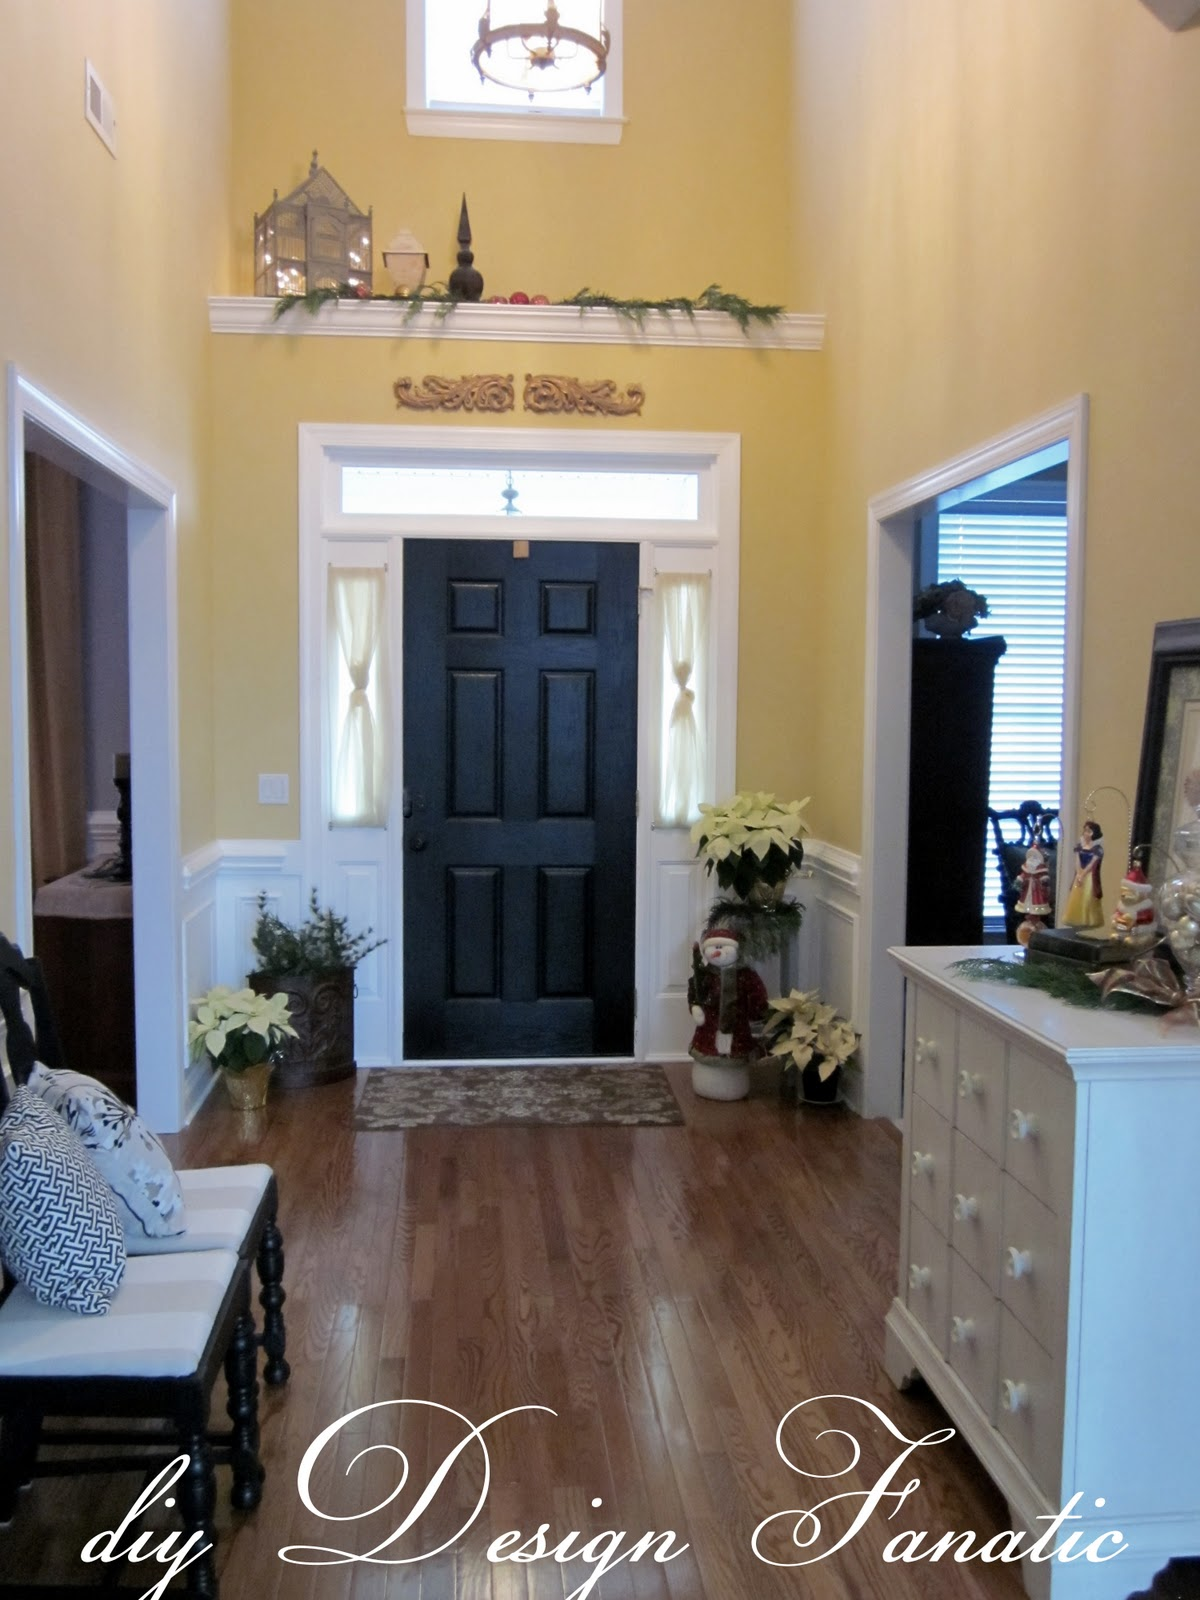 Front Door Foyer Designs : Diy design fanatic christmas decorating in the foyer